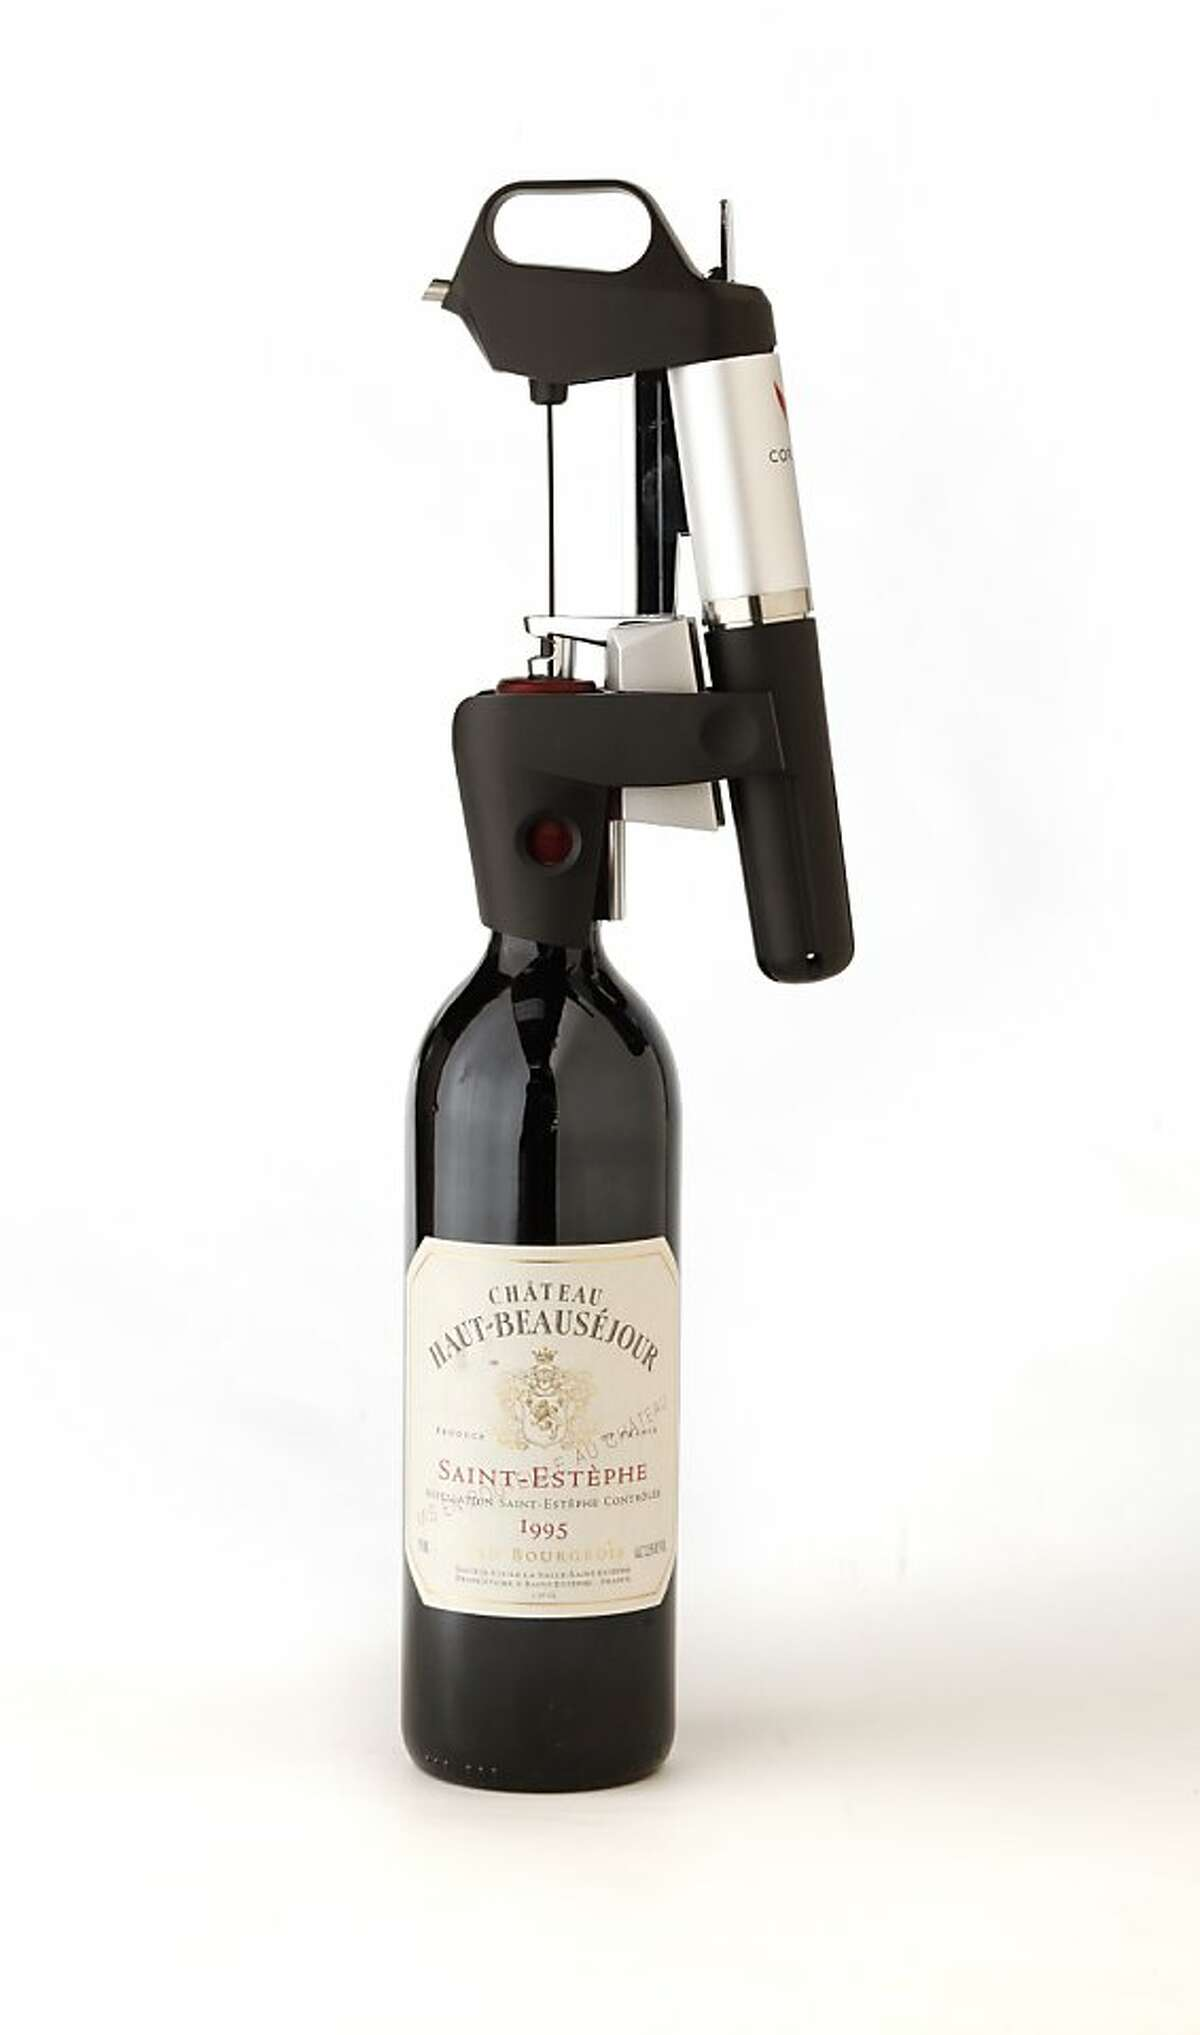 The Coravin wine preservation device as seen in San Francisco, California on Wednesday, December 4, 2013.